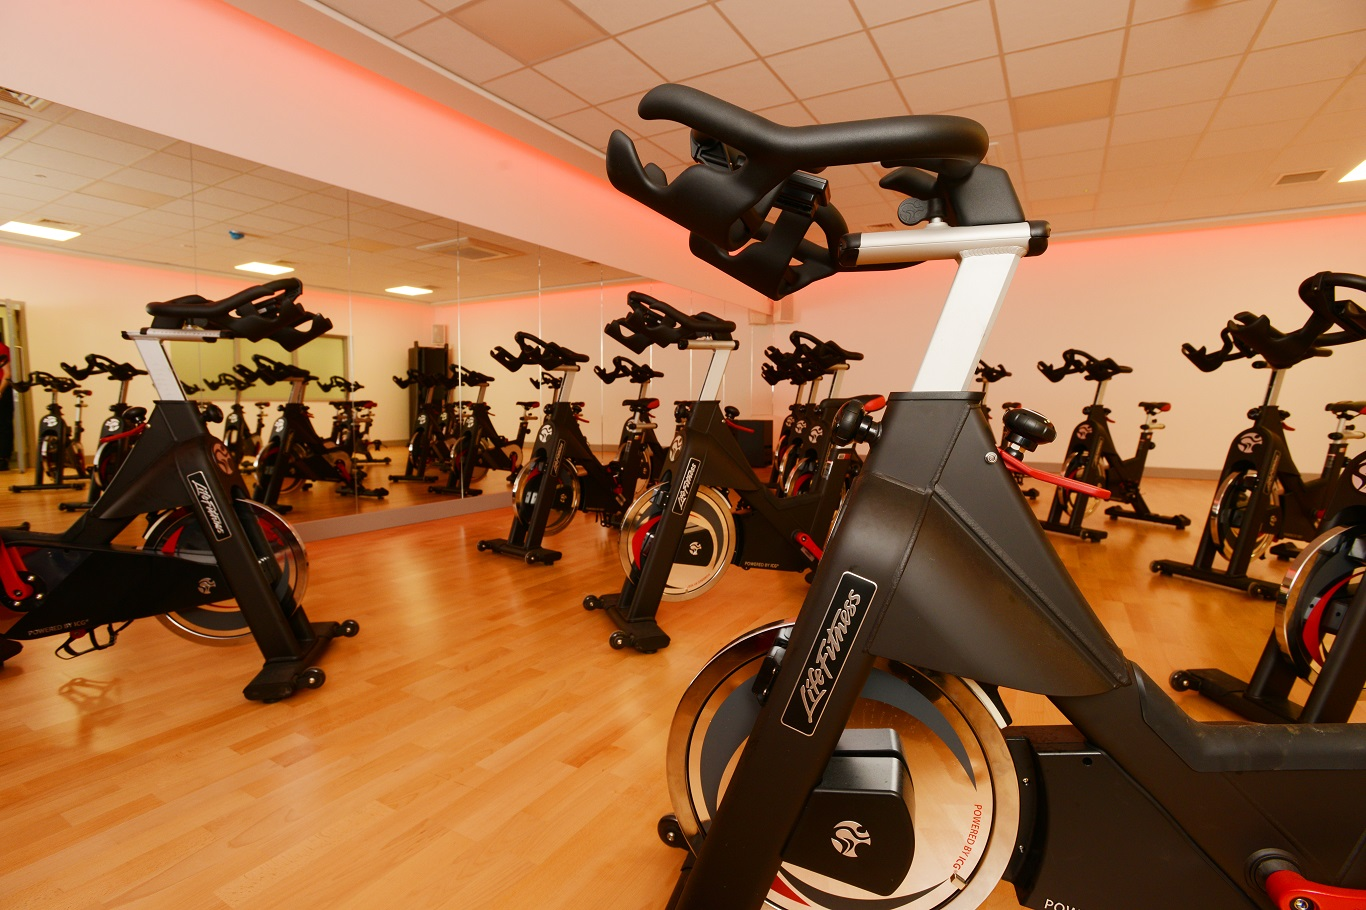 FUSION LIFESTYLE UNVEILS £1.8M MEADOWLANDS LEISURE CENTRE TRANSFORMATION AS PART   £9MILLION DEVON INVESTMENT